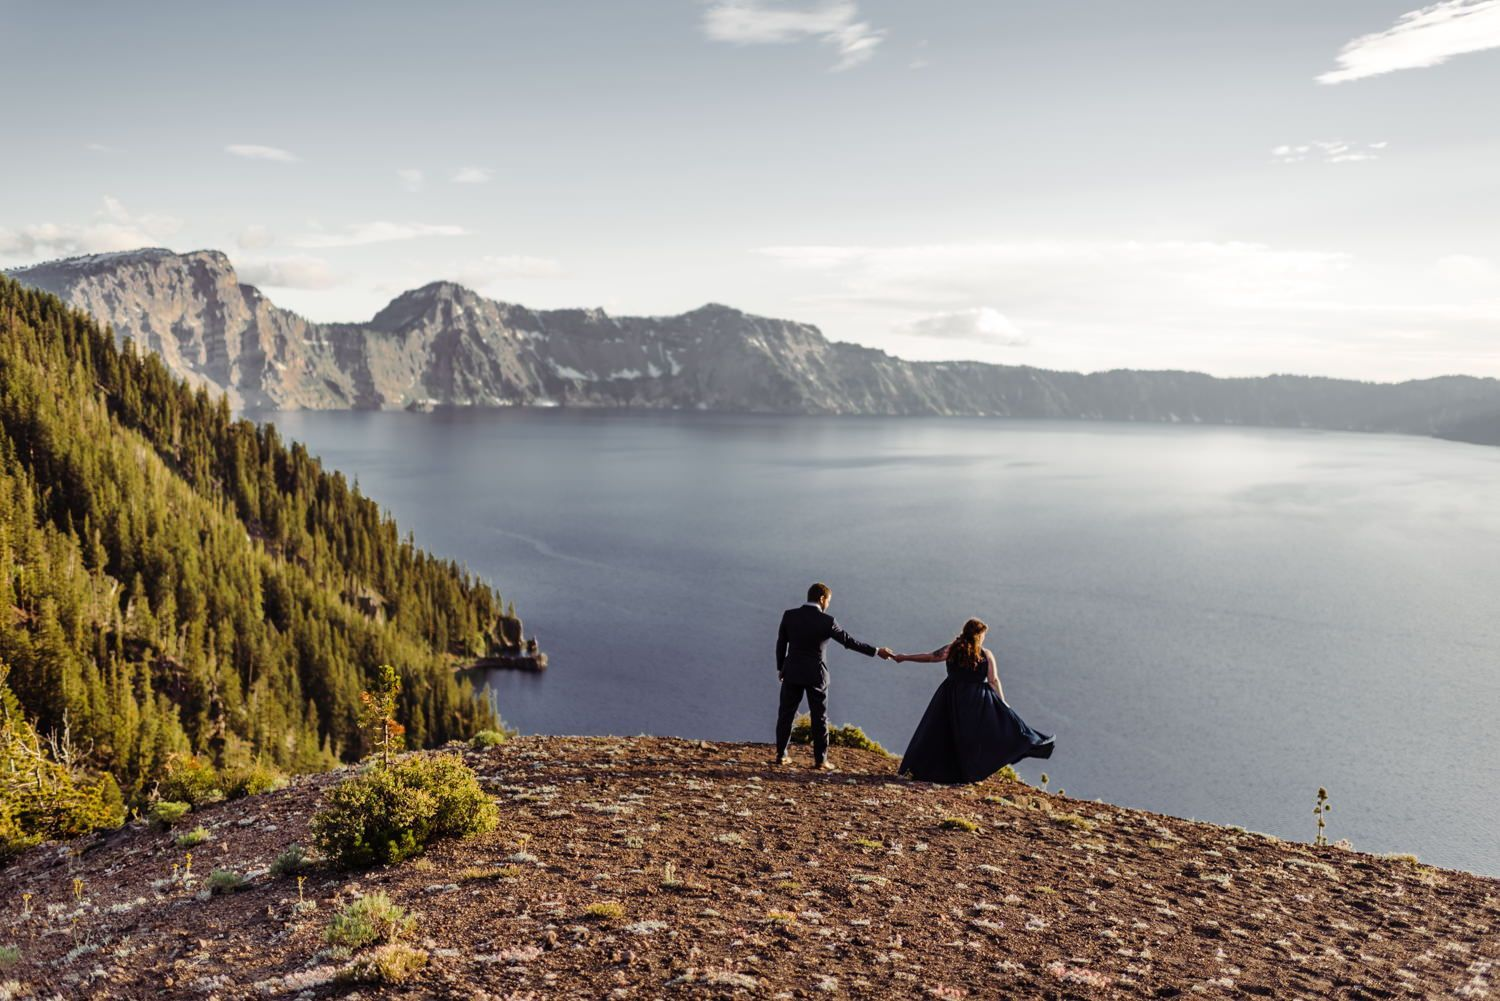 Kim and Jesse celebrated 10 years with an epic adventure vow renewal at Crater Lake National Park.    For Crater Lake Elopement and Vow Renewal inspo, CLICK to read more! | Sam Starns | Adventure Elopement Photographer | PNW, Montana, Kauai and Beyond #craterlakenationalpark Kim and Jesse celebrated 10 years with an epic adventure vow renewal at Crater Lake National Park.    For Crater Lake Elopement and Vow Renewal inspo, CLICK to read more! | Sam Starns | Adventure Elopement Photographer | PNW #craterlakenationalpark